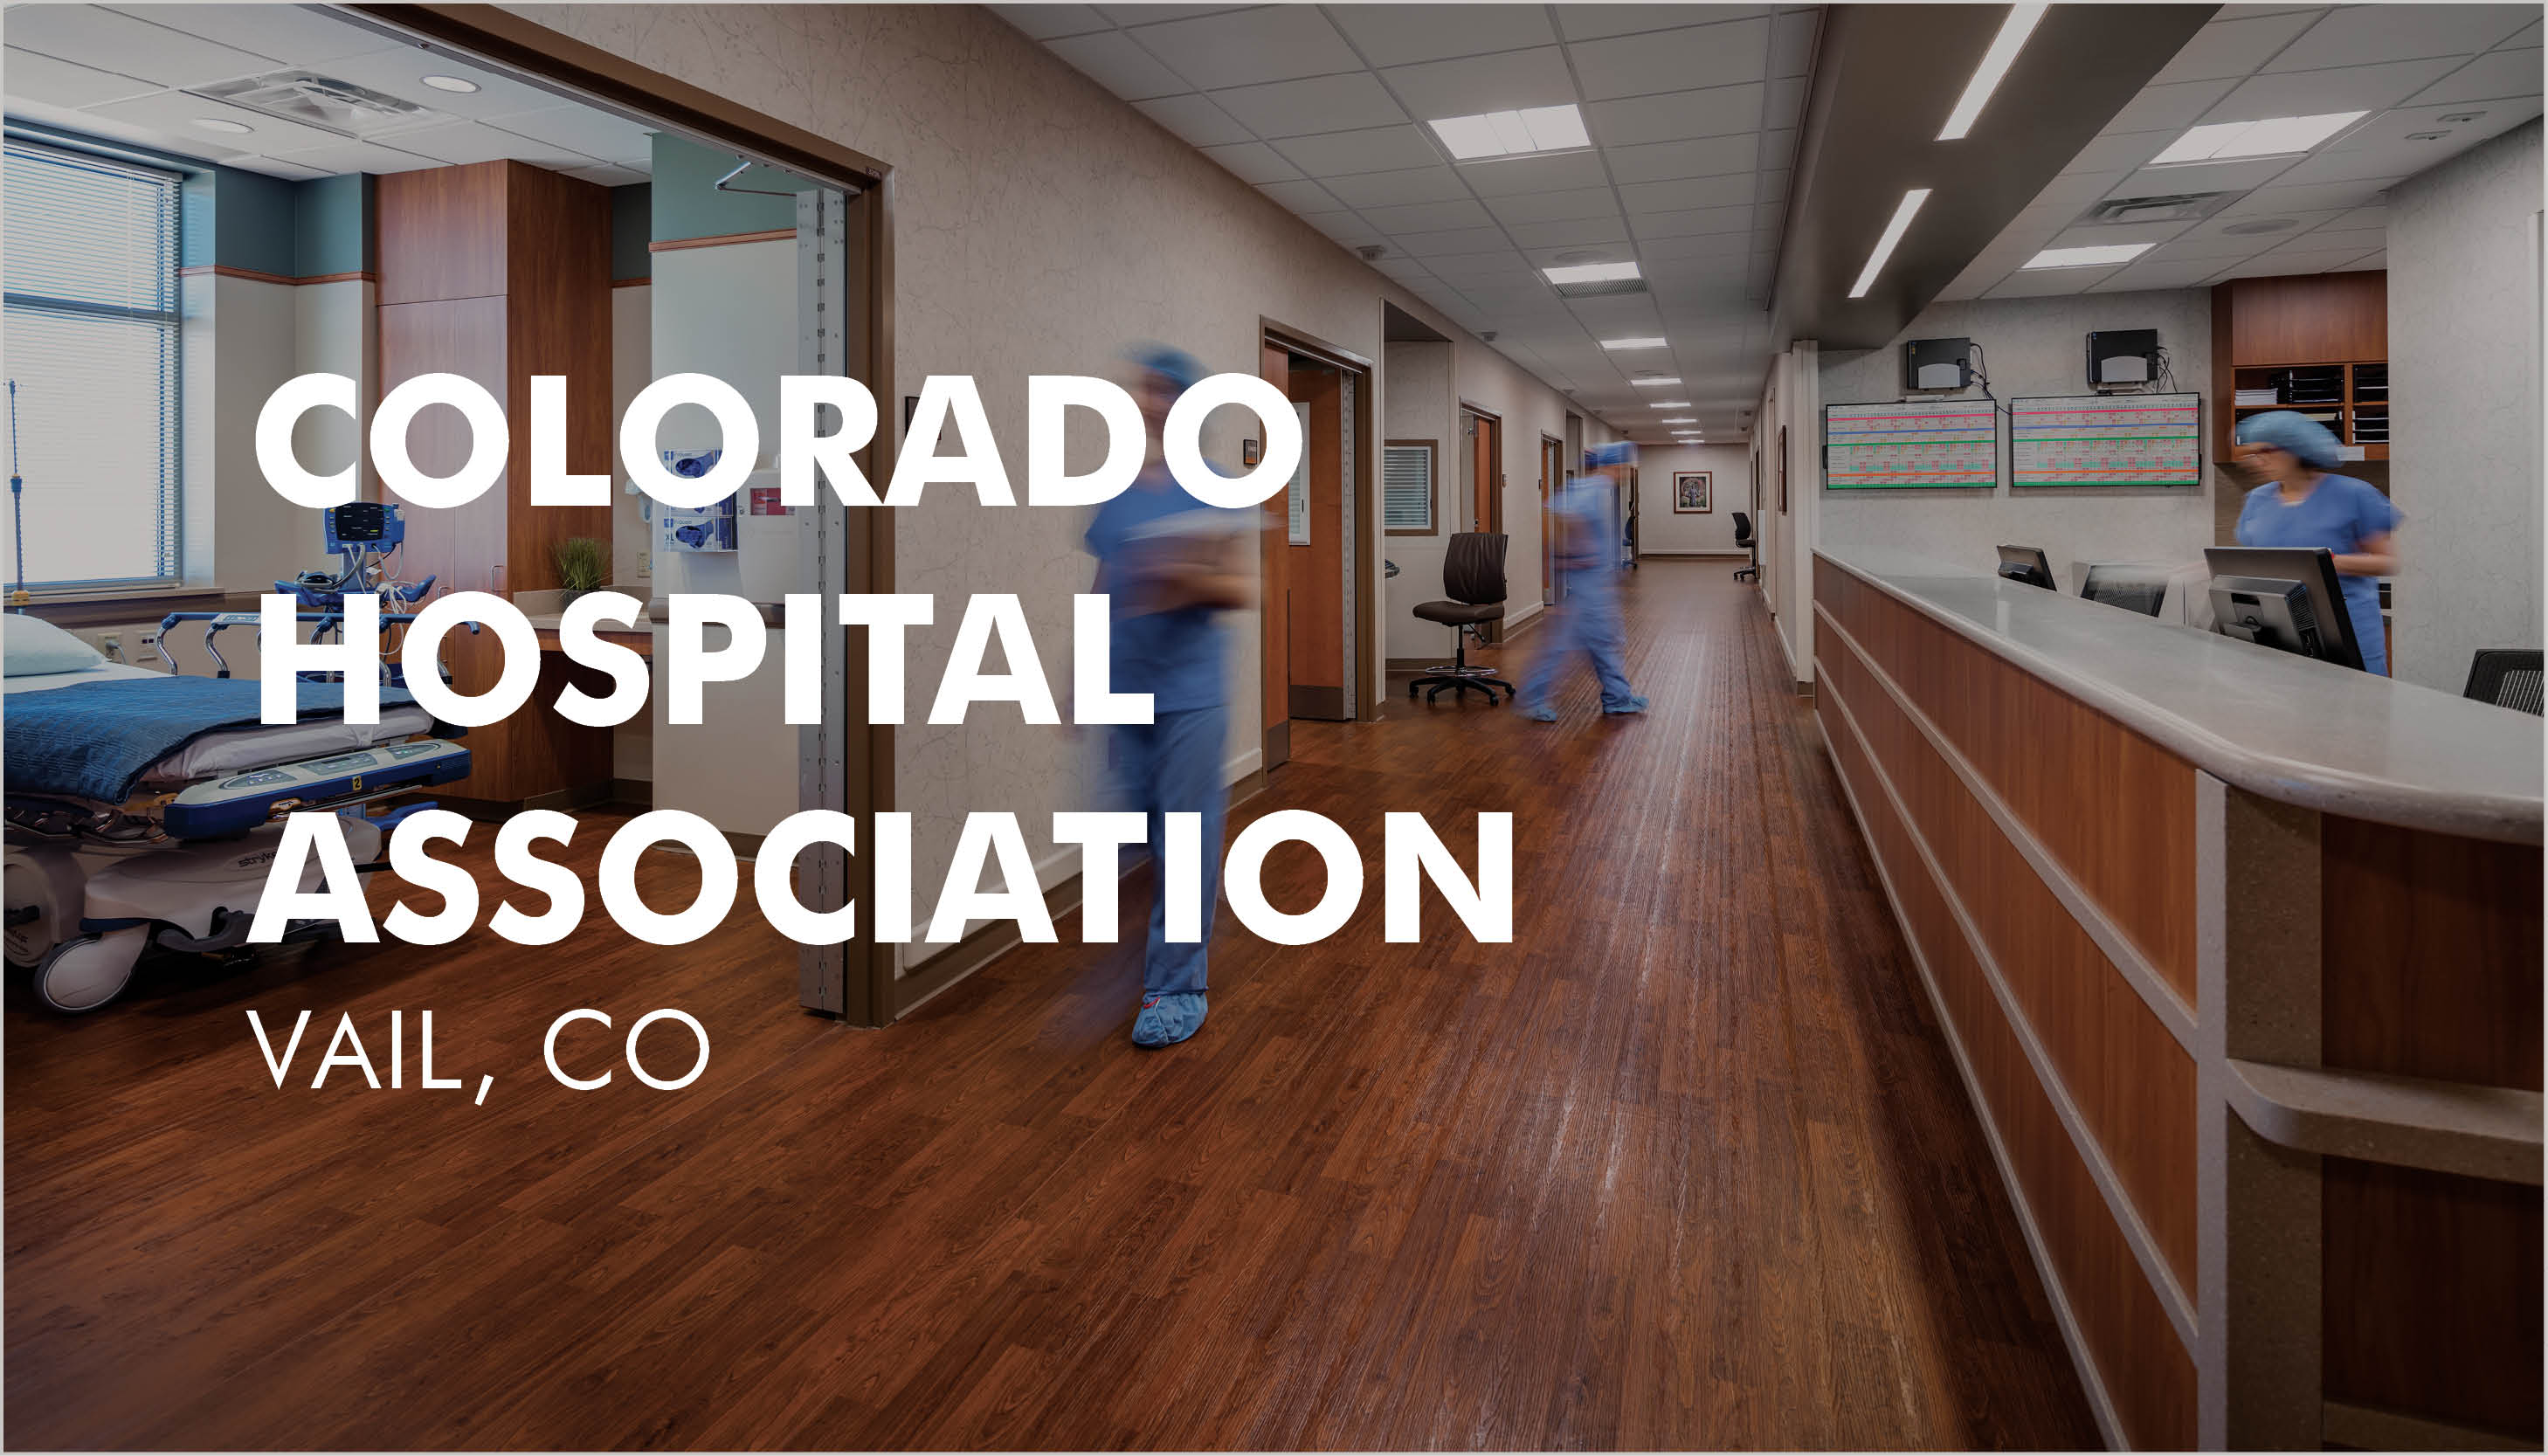 2019 Colorado Hospital Association Annual Meeting Image